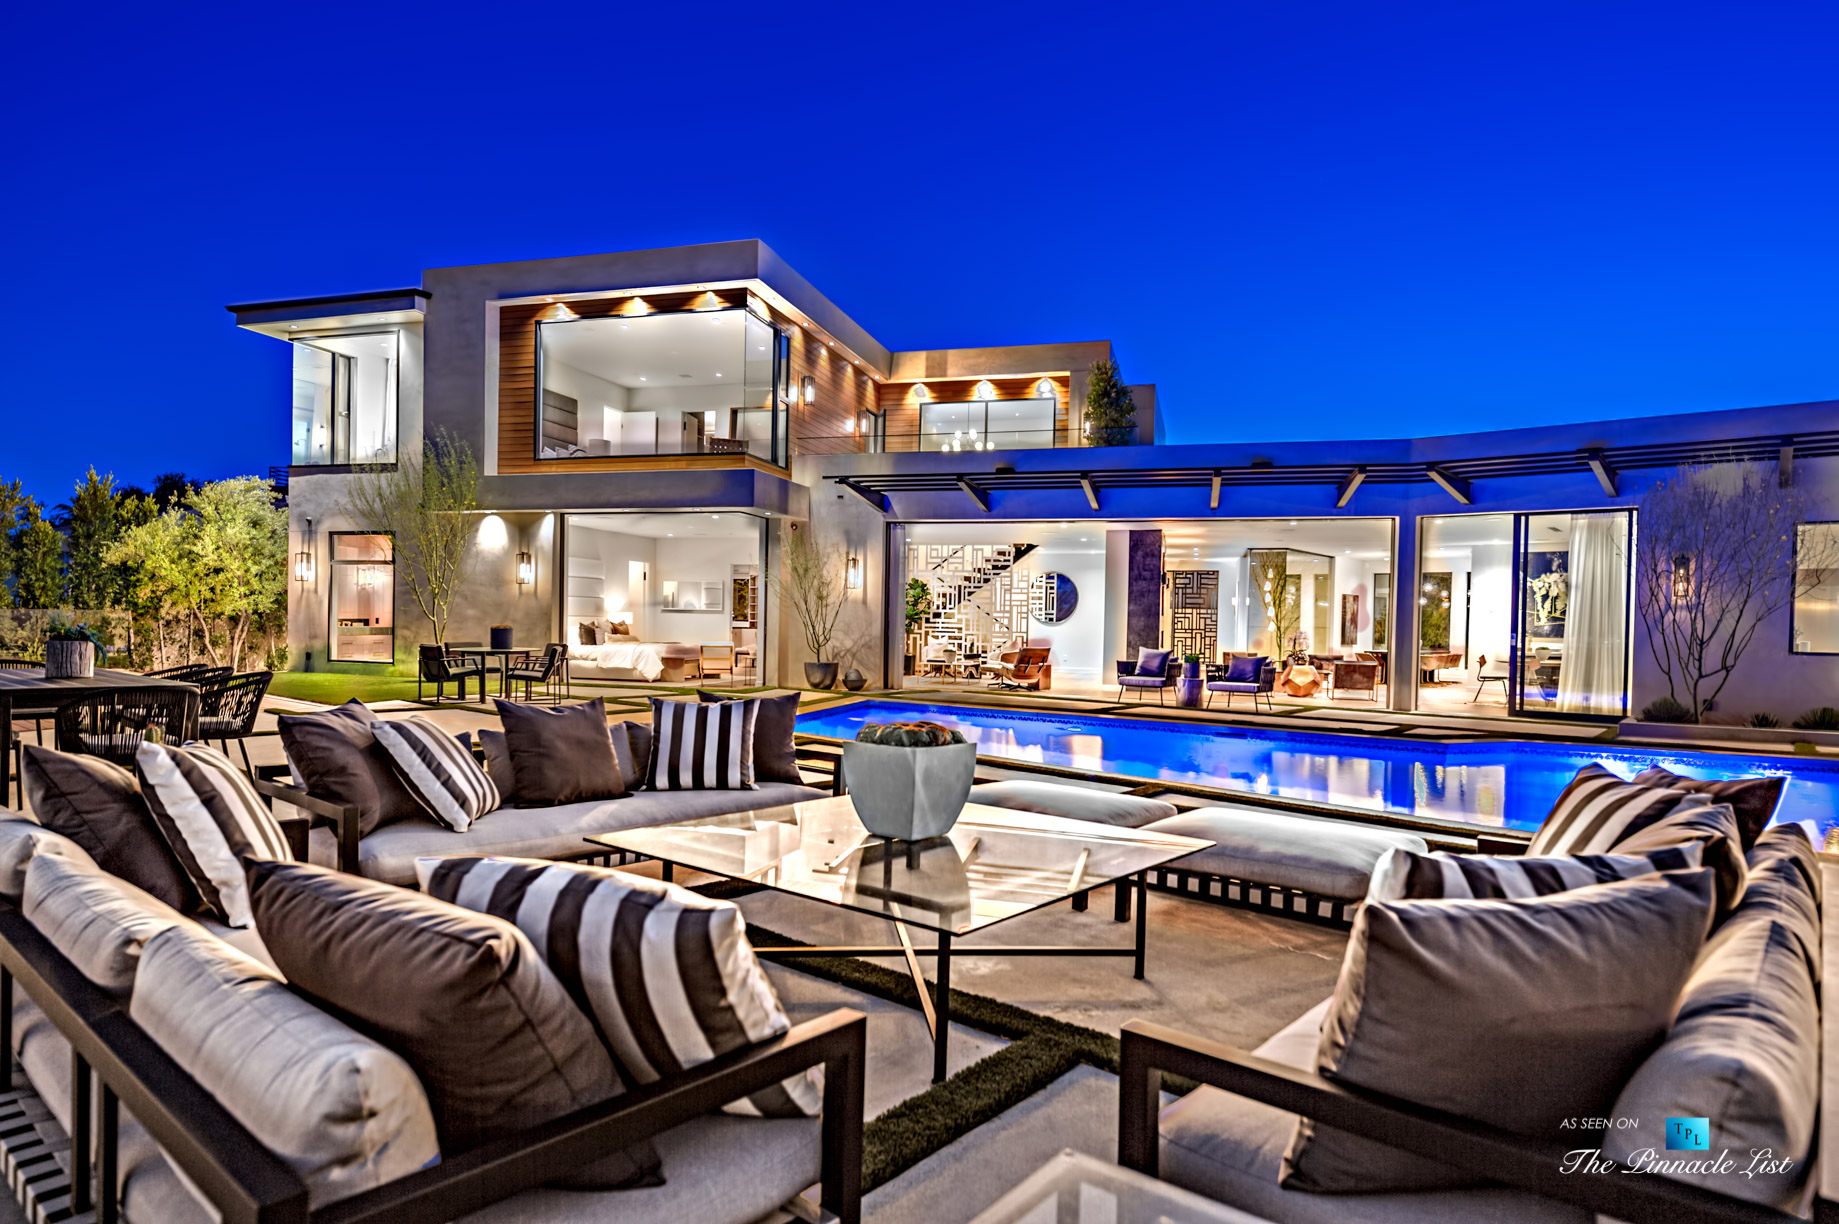 816 Glenmere Way, Brentwood, Los Angeles, CA, USA